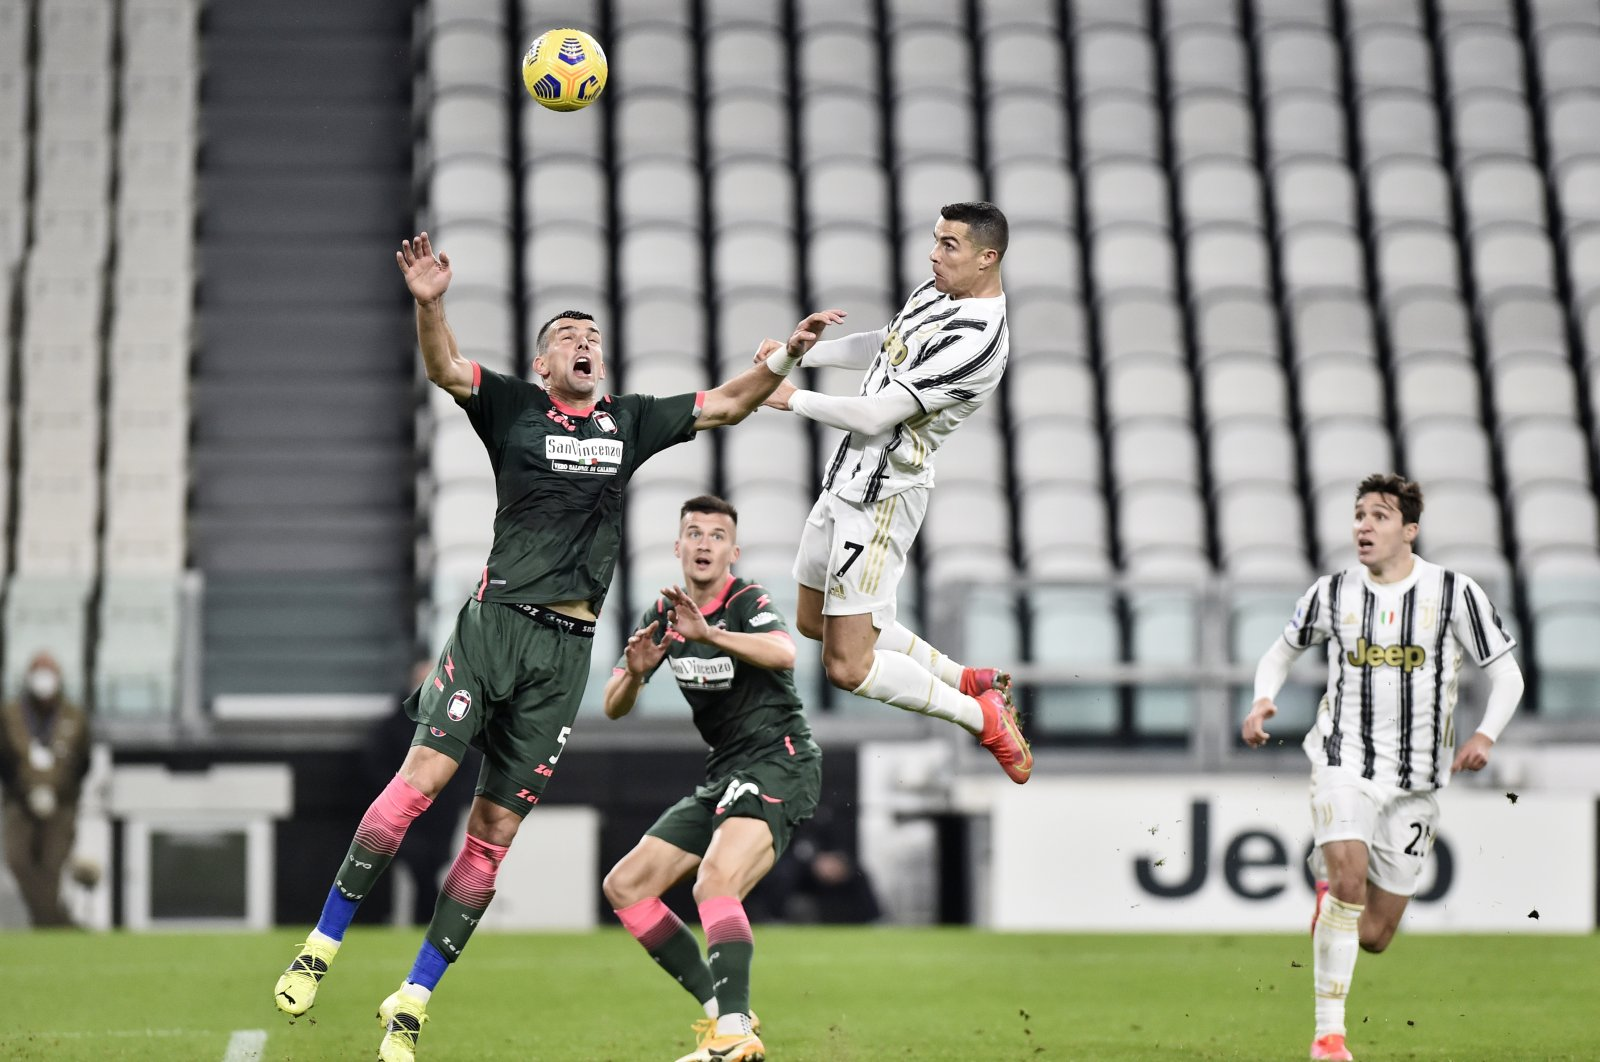 Juventus' Cristiano Ronaldo (C) scores his side's second goal against Crotone, Allianz Stadium, Turin, Italy, Feb. 22, 2021. (Reuters Photo)